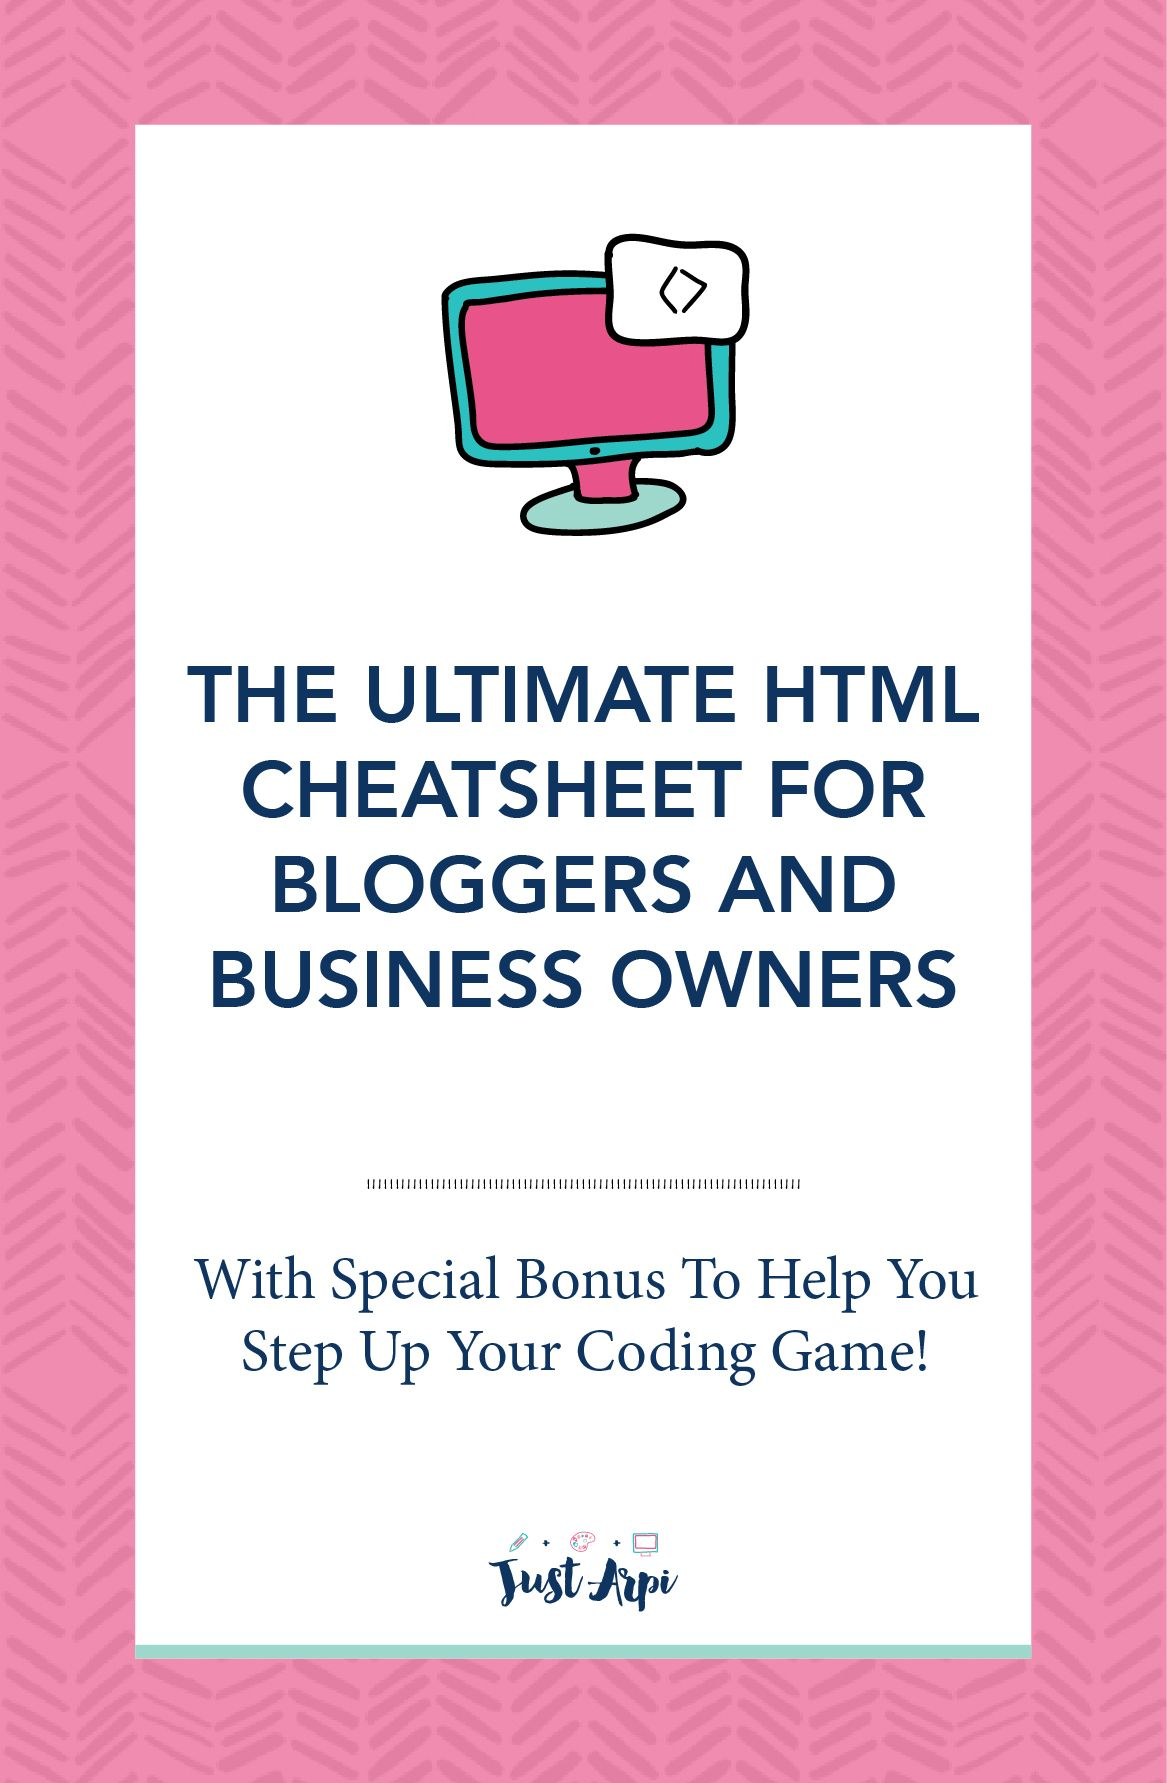 The Ultimate HTML Cheatsheet for bloggers | Bookmarks, Business and ...